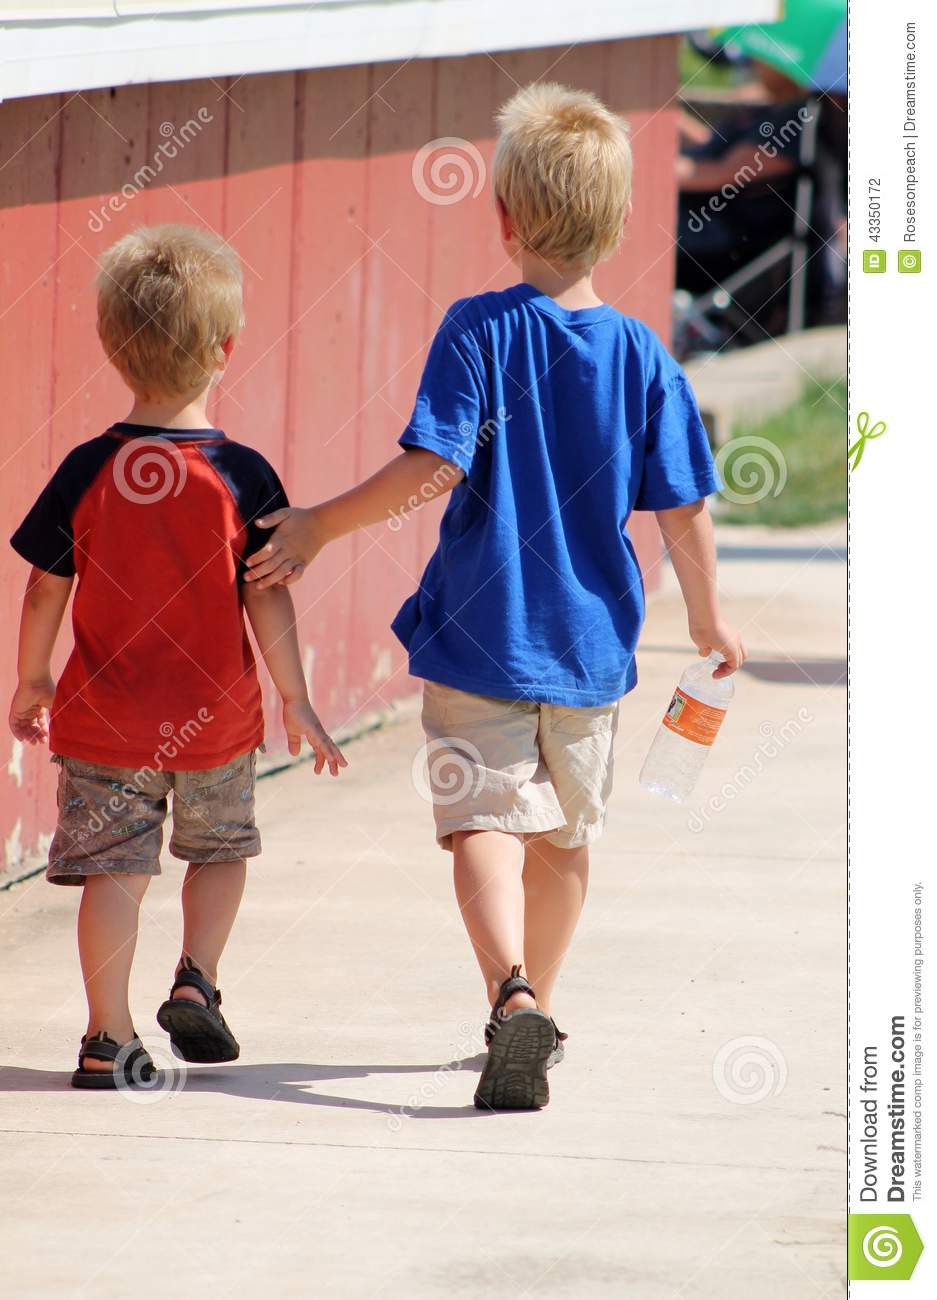 Big Brother Taking Care Of Little Brother Stock Photo